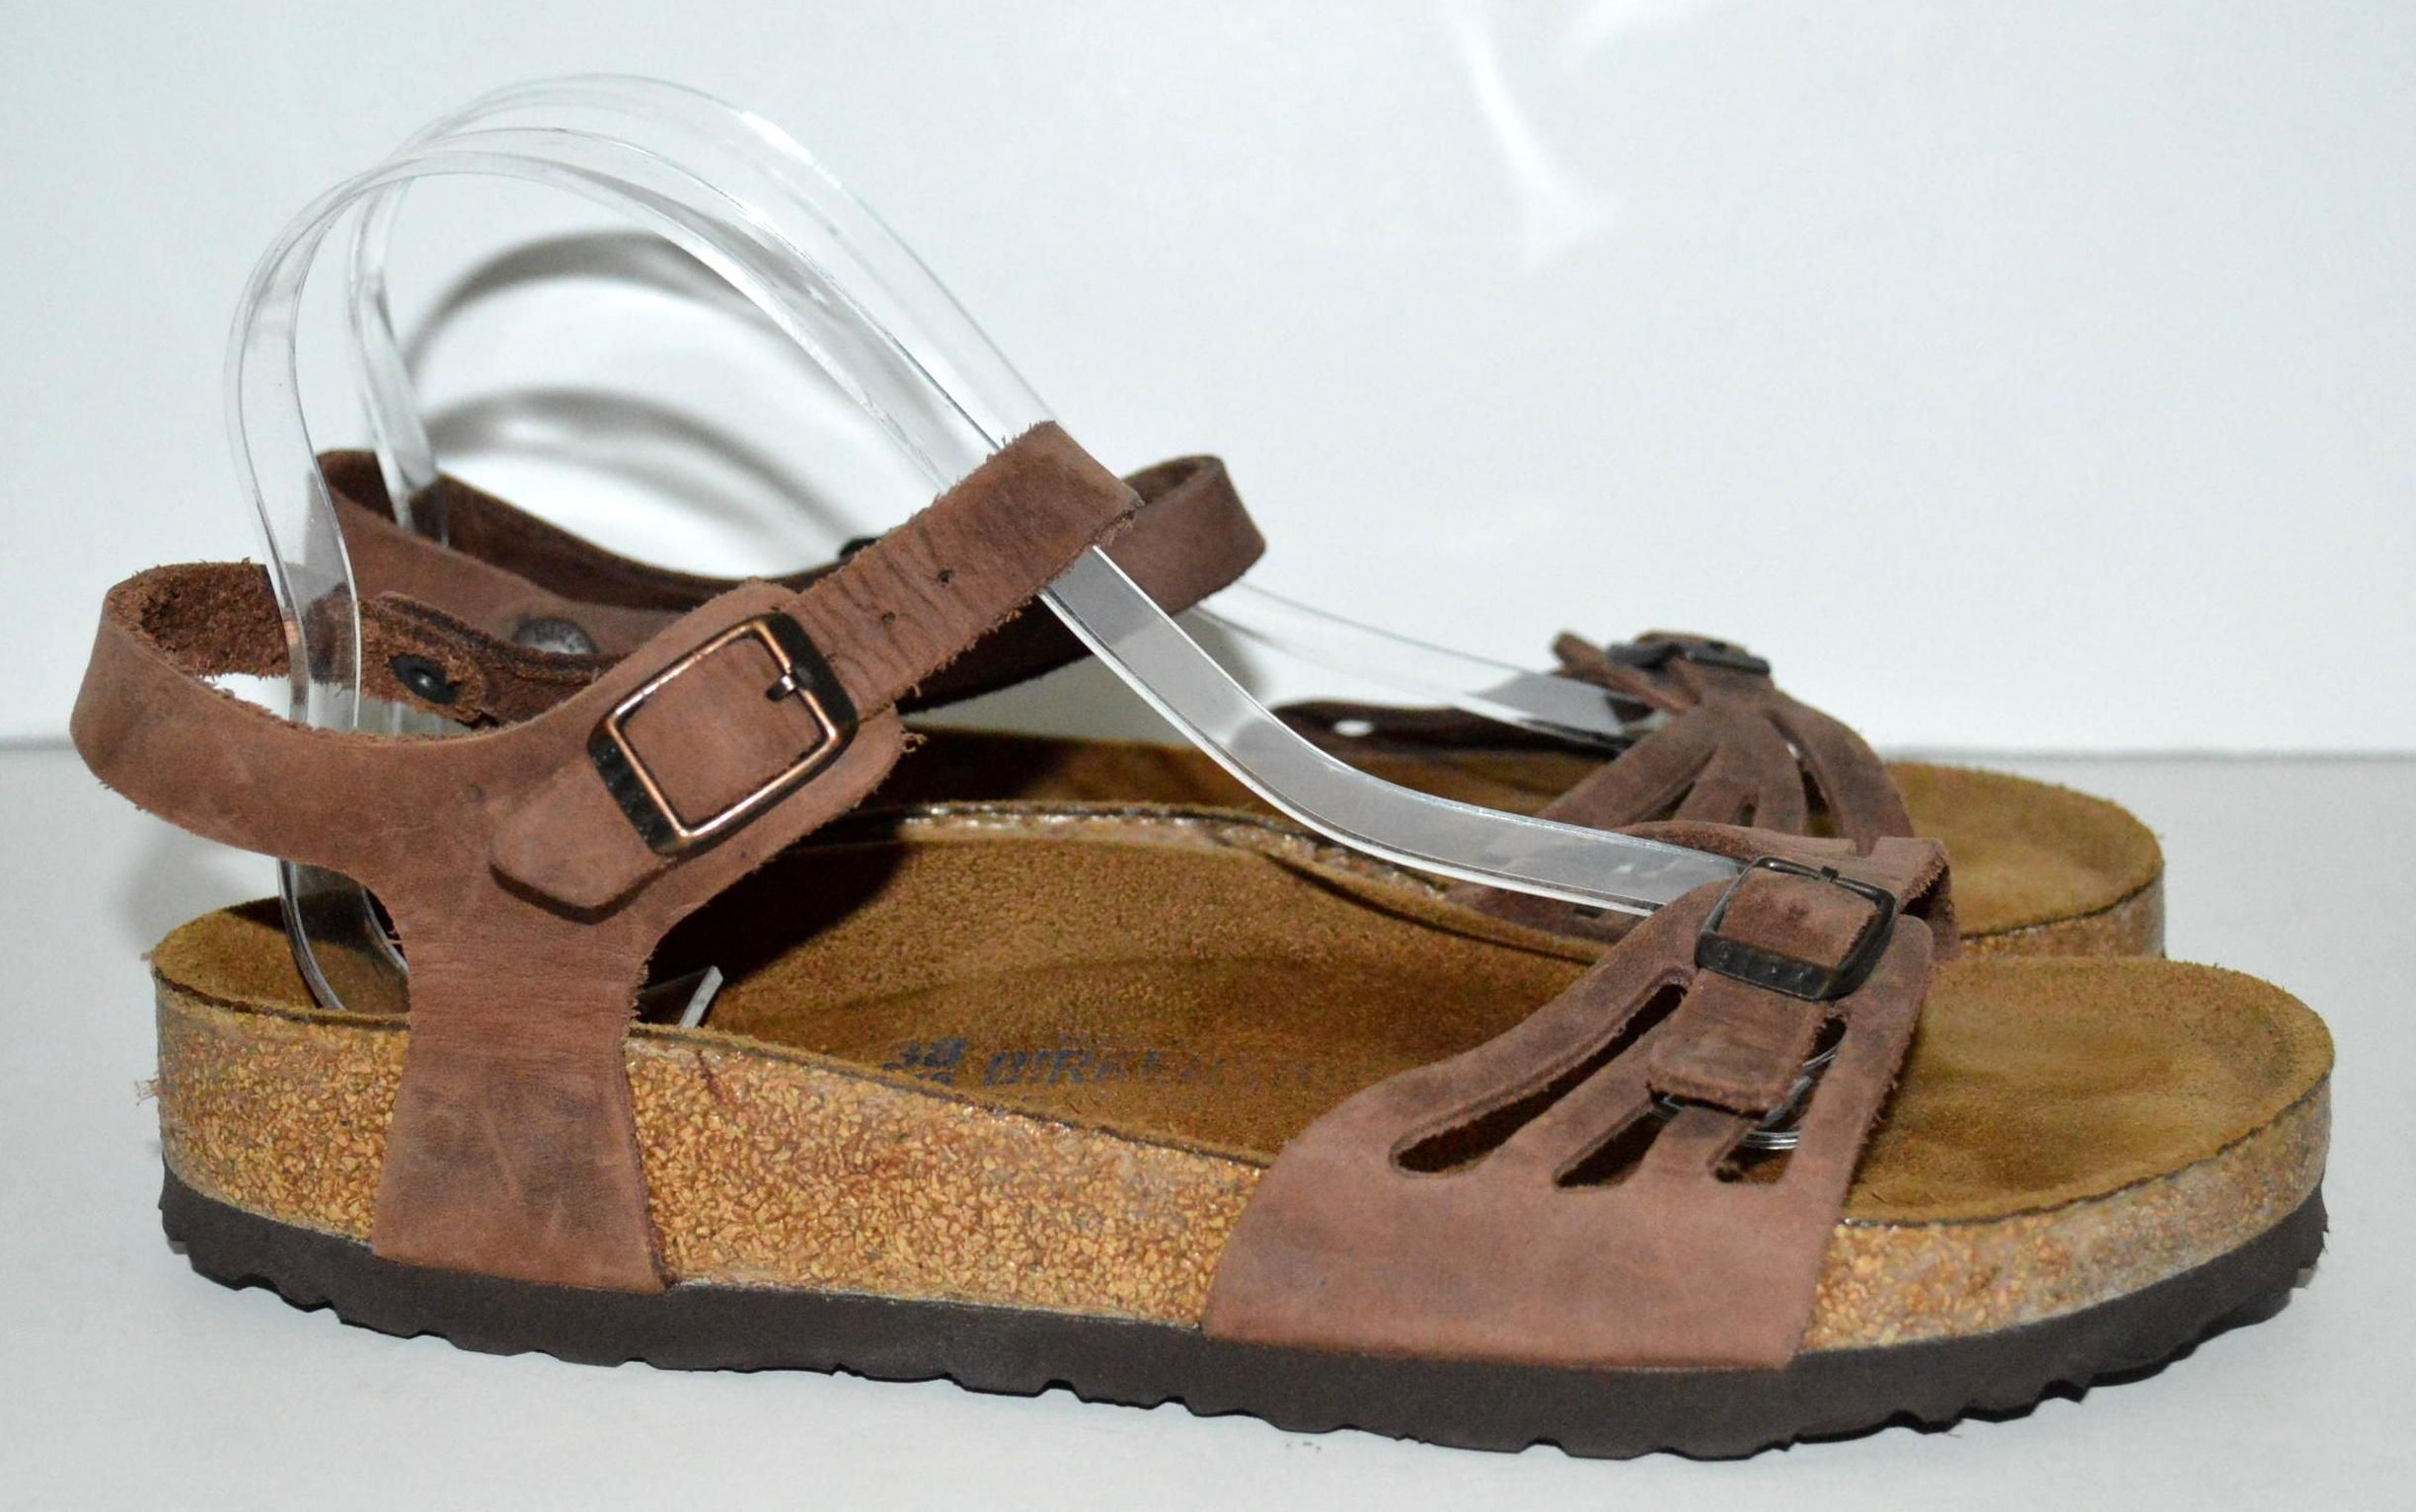 ef4a858af74cc1 Birkenstock Bali Brown Sandals. Get the must-have sandals of this season!  These Birkenstock Bali Brown Sandals are a top 10…